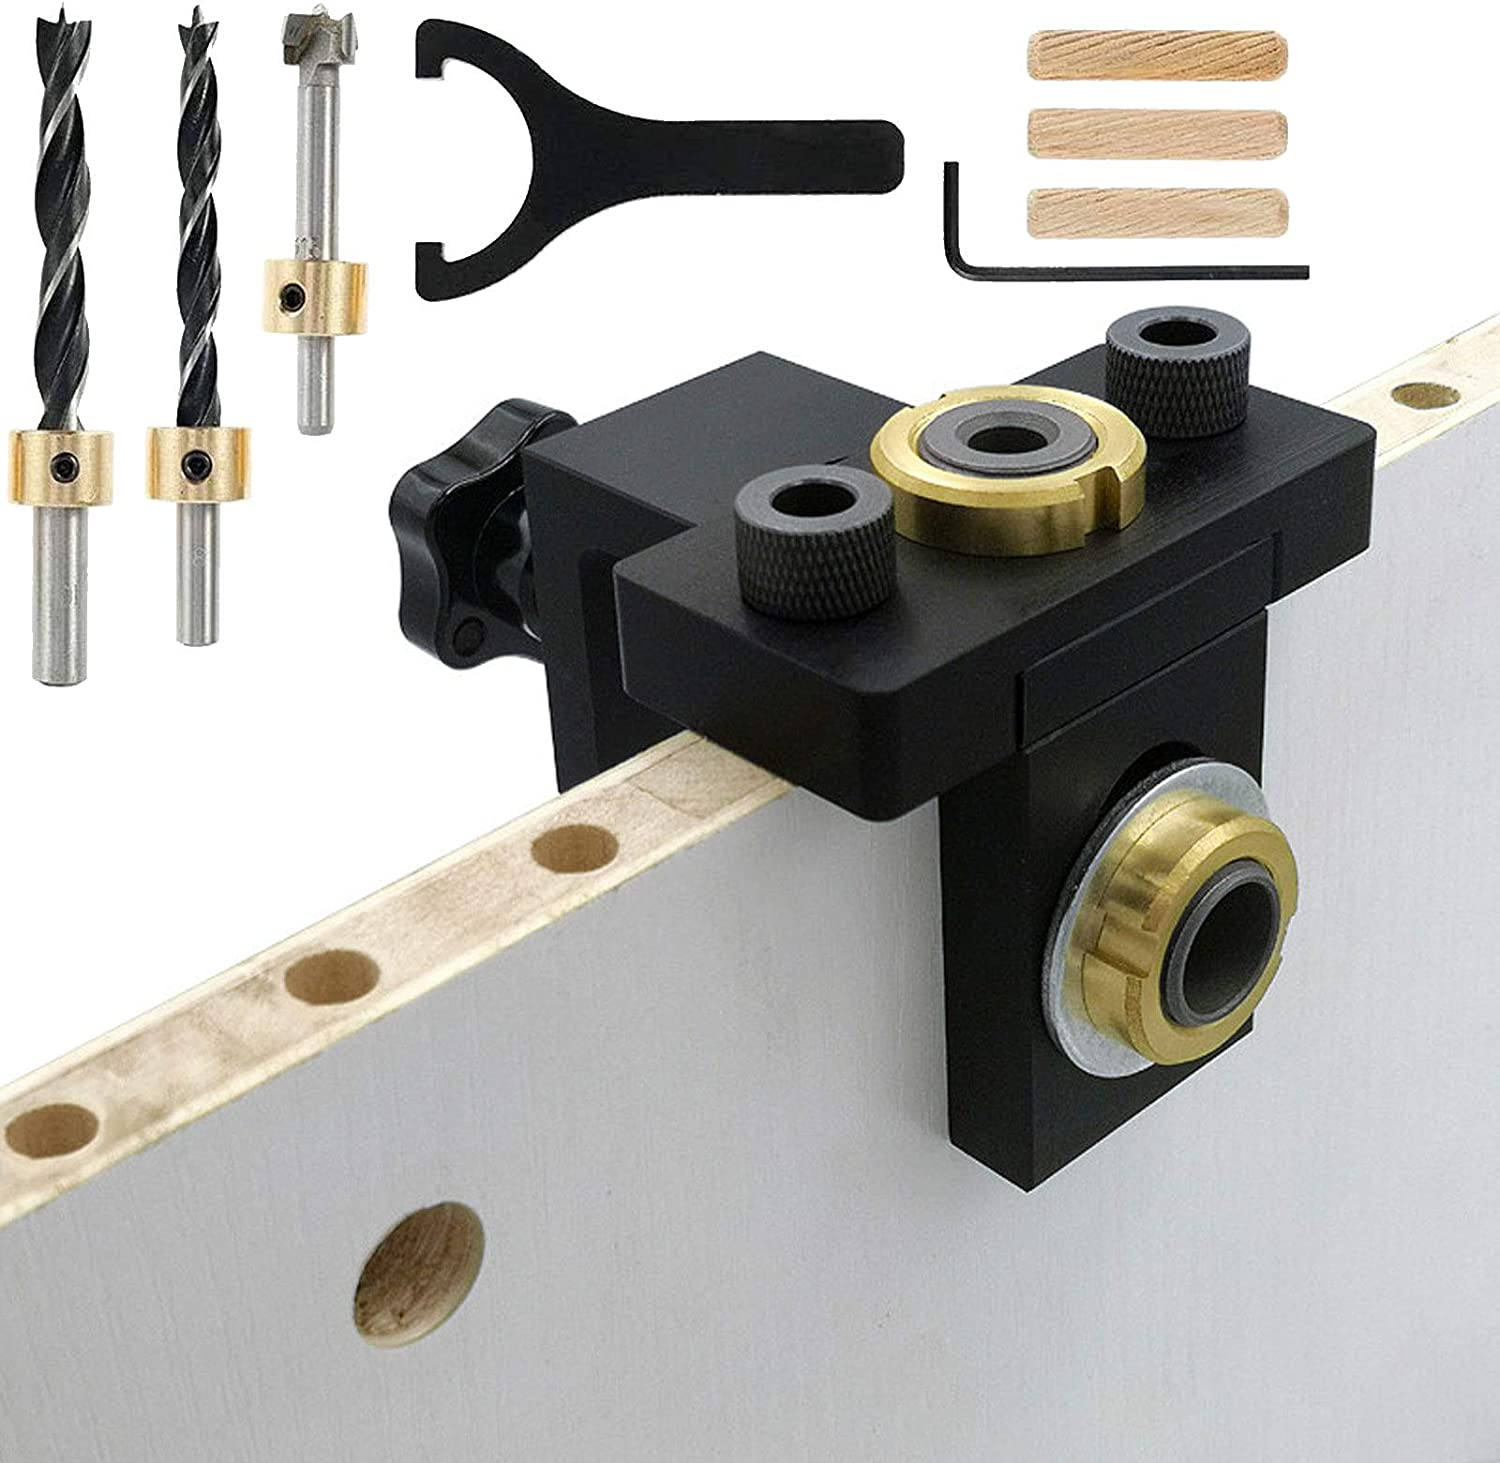 3 in 1 Adjustable Woodworking Doweling Jig with 8//10mm Hole Drill Guide Self Centering Doweling Positioning Jig with Angle Guide Bit for Drilling Guide Locator Puncher Pocket Hole Jig